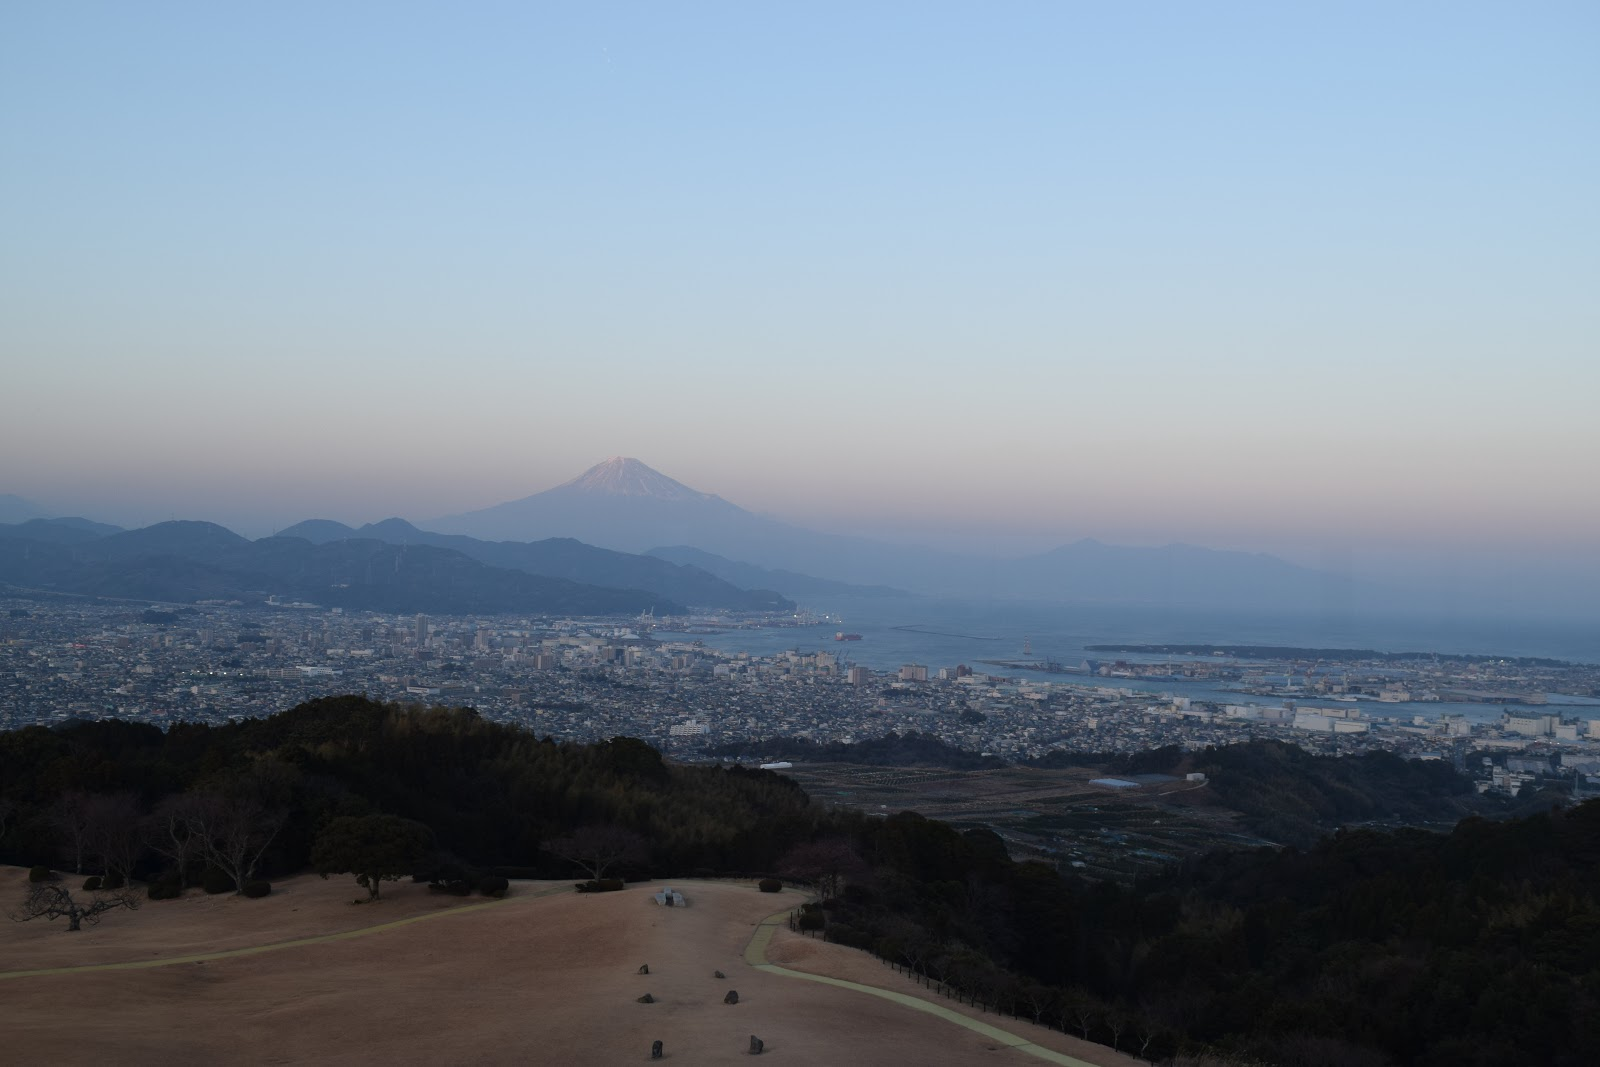 Mt Fuji as seen from Nihon Daira